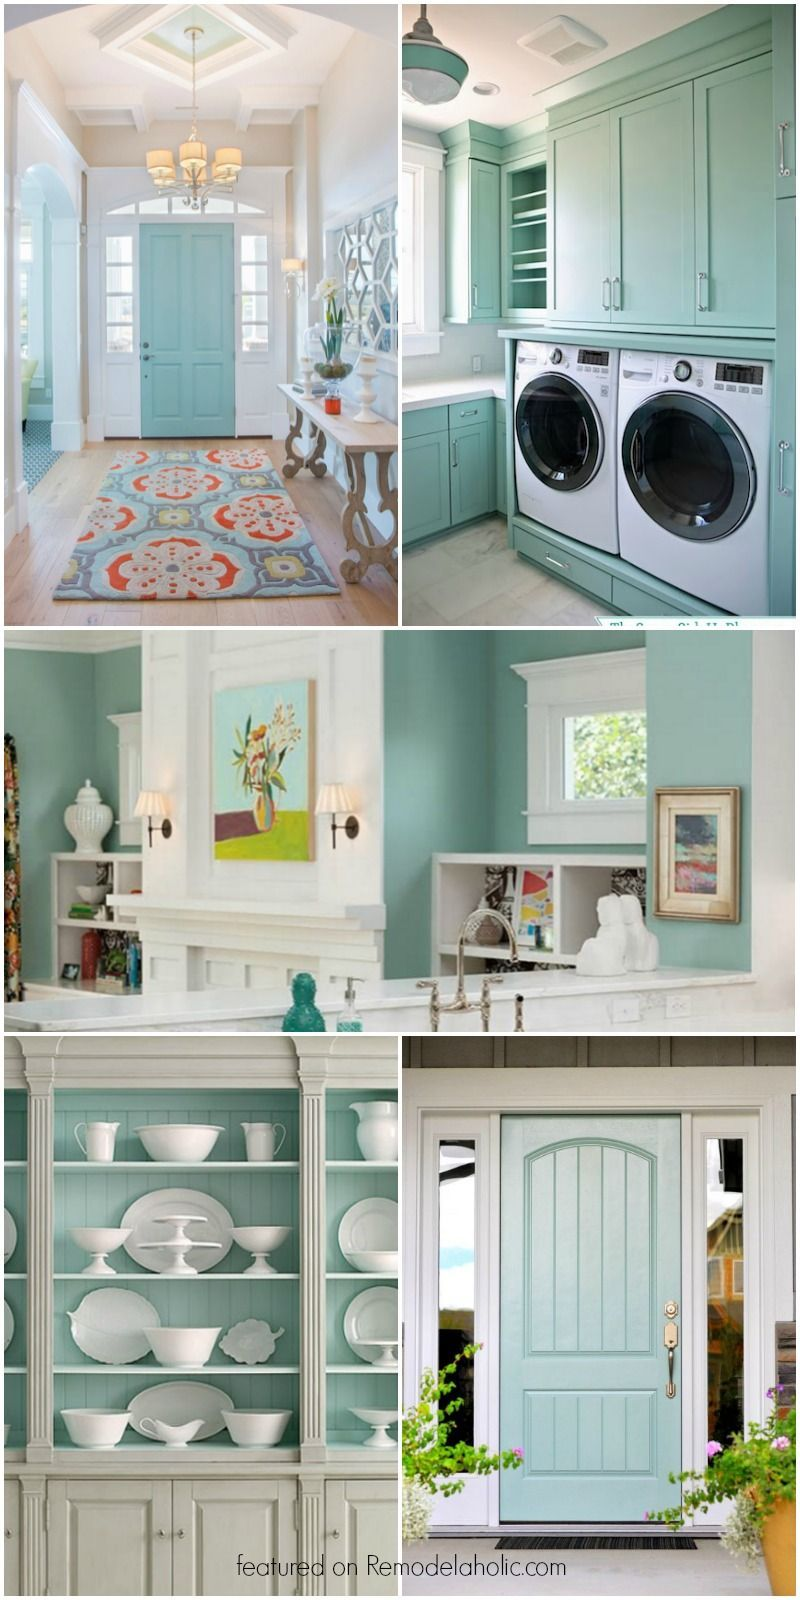 This Beautiful Light Blue Gray Paint Color Is So Versatile Interiors And Exteriors For Cabinets Wallore